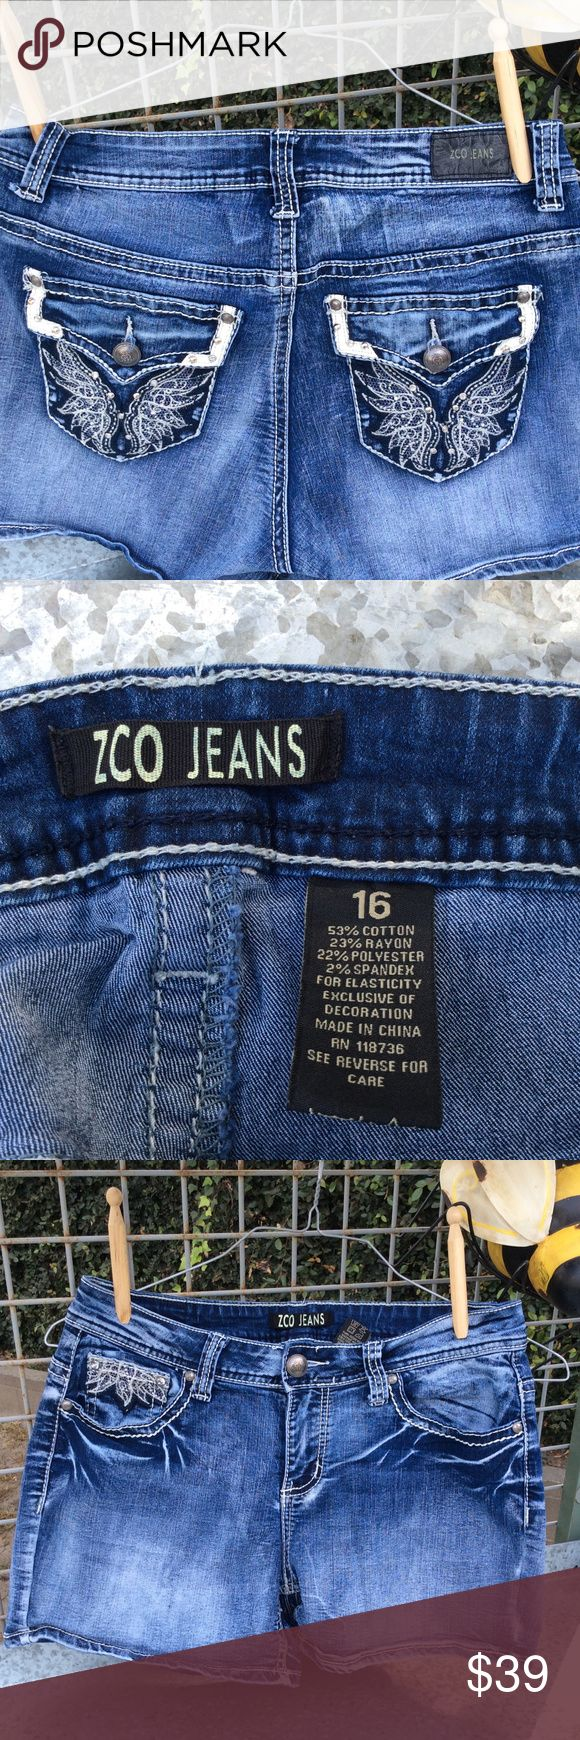 "Zco Jean Shorts Size 16 Zco Jean Shorts Size 16  These shorts are too small to be Women's Size 16. Must be Juniors but doesn't fit in Poshmark Junior sizing chart.   Waist 33 1/2"" Zco Shorts Jean Shorts"